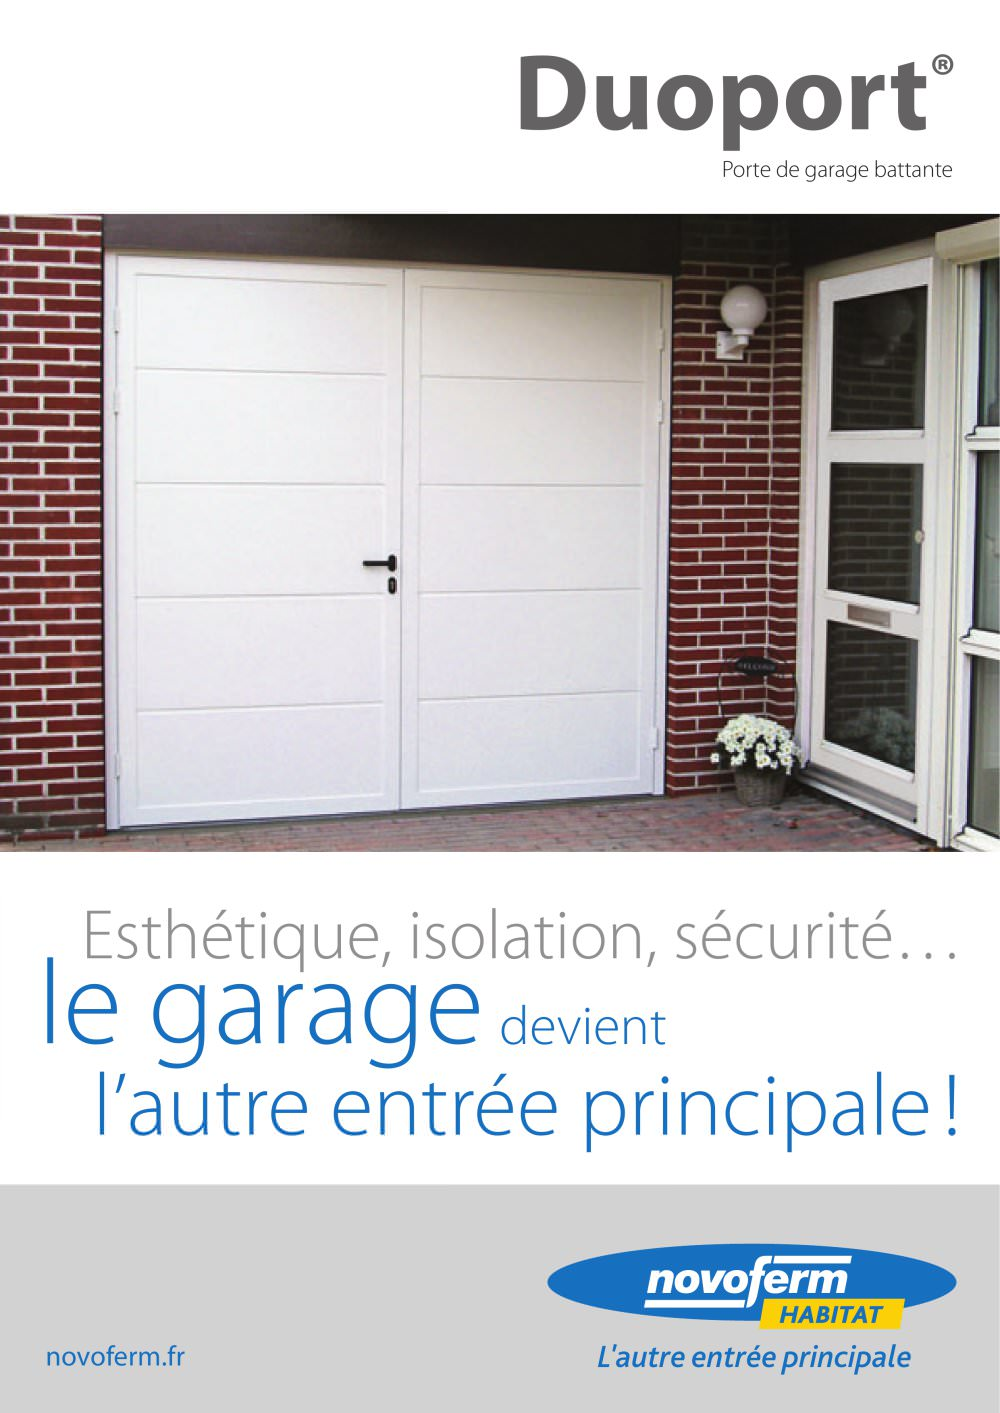 Portes De Garage Novoferm Duoport Novoferm Industrie Catalogue Pdf Documentation